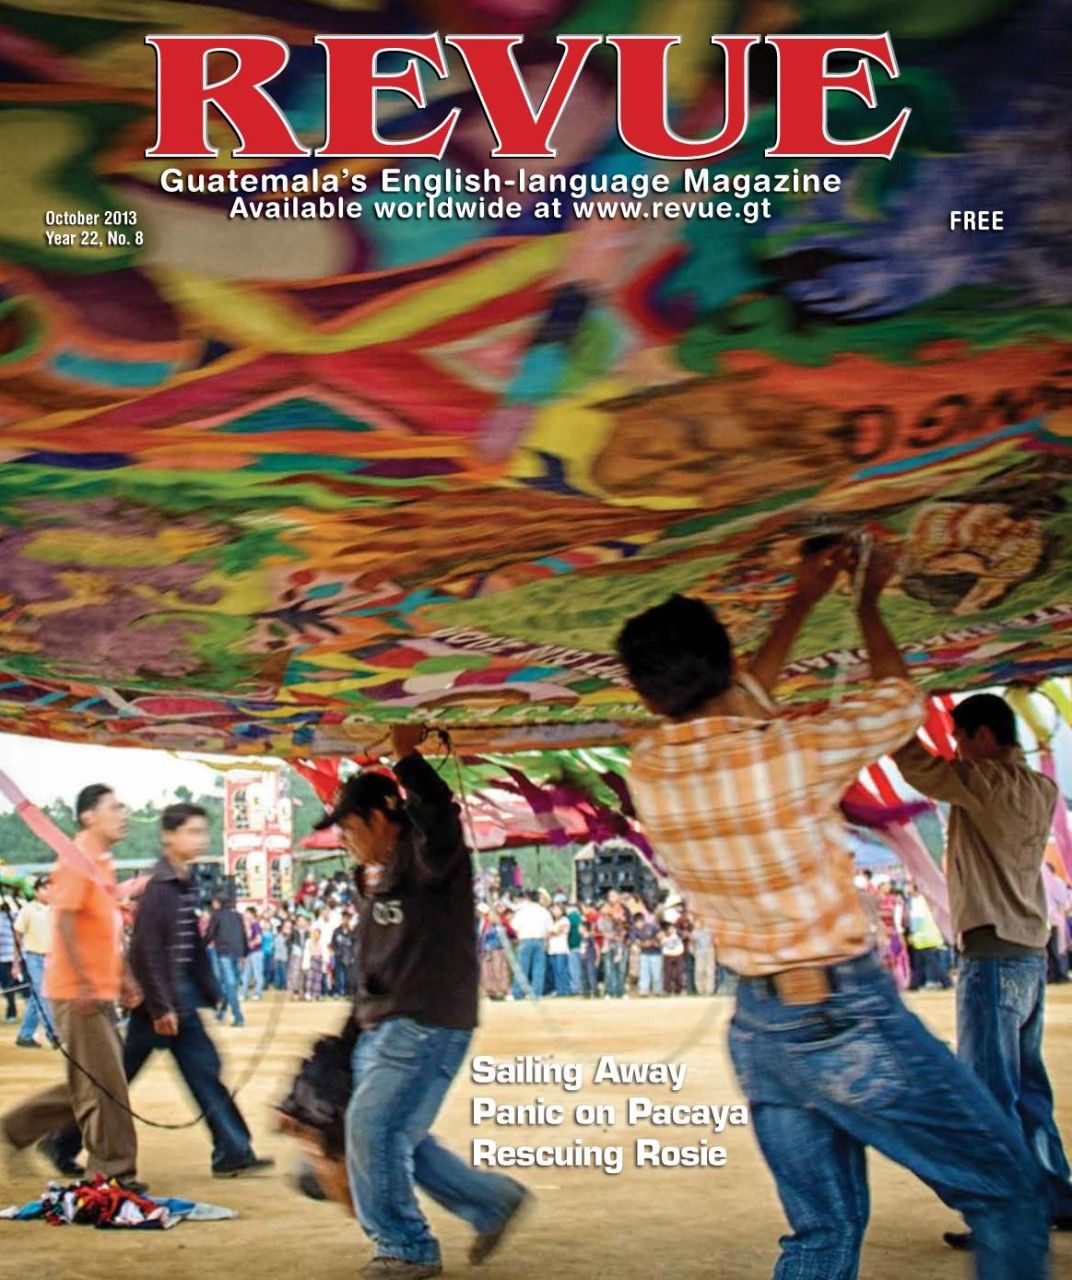 Revue Magazine cover october 2013 by Rudy Giron